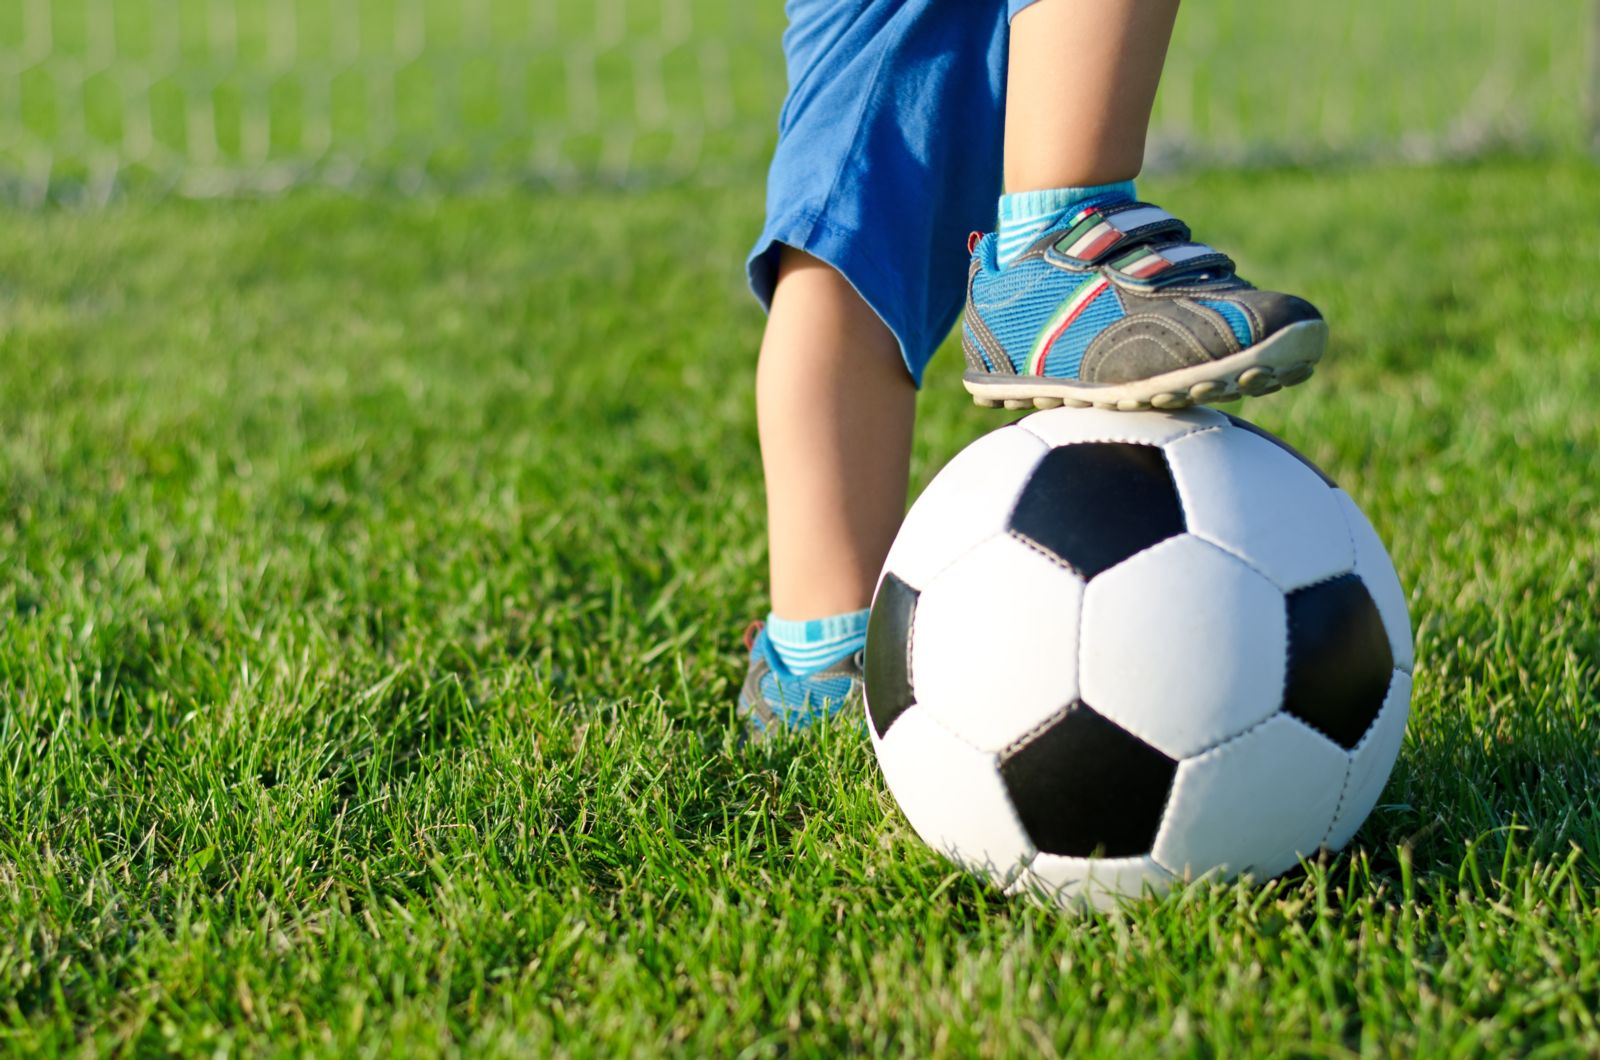 Summer sports like soccer can take a toll on children's foot health